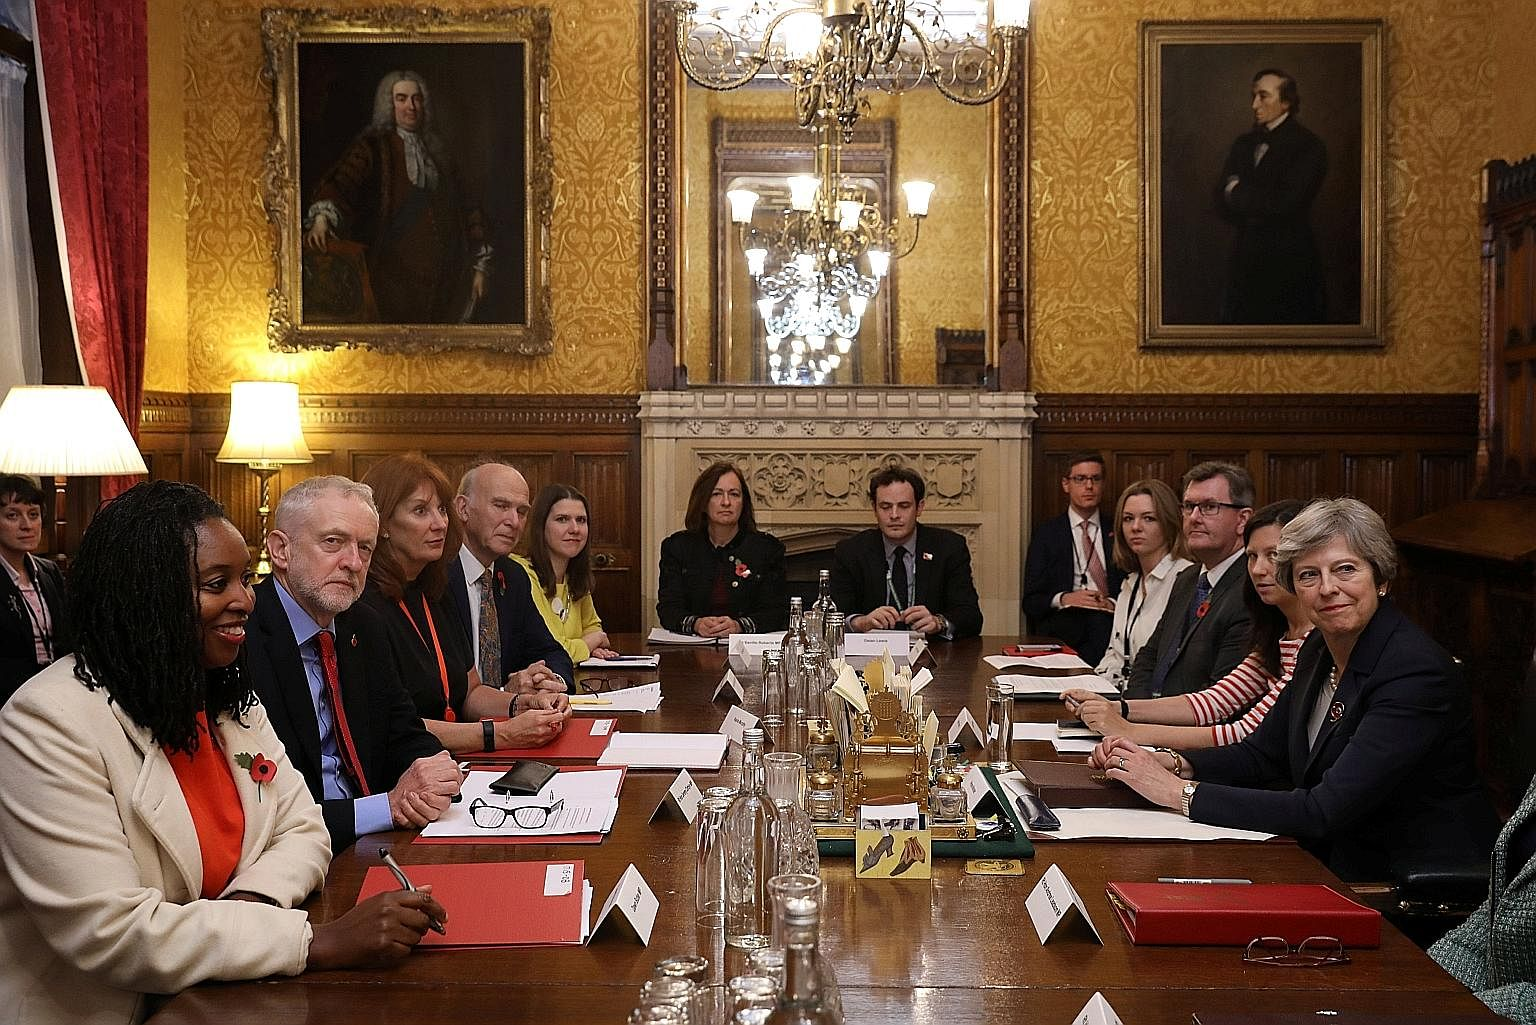 The leader of Britain's Labour Party, Mr Jeremy Corbyn (second from left), at a meeting with Prime Minister Theresa May (far right) at Downing Street on Monday. Mrs May is facing calls to embark on a full-scale Cabinet reshuffle.